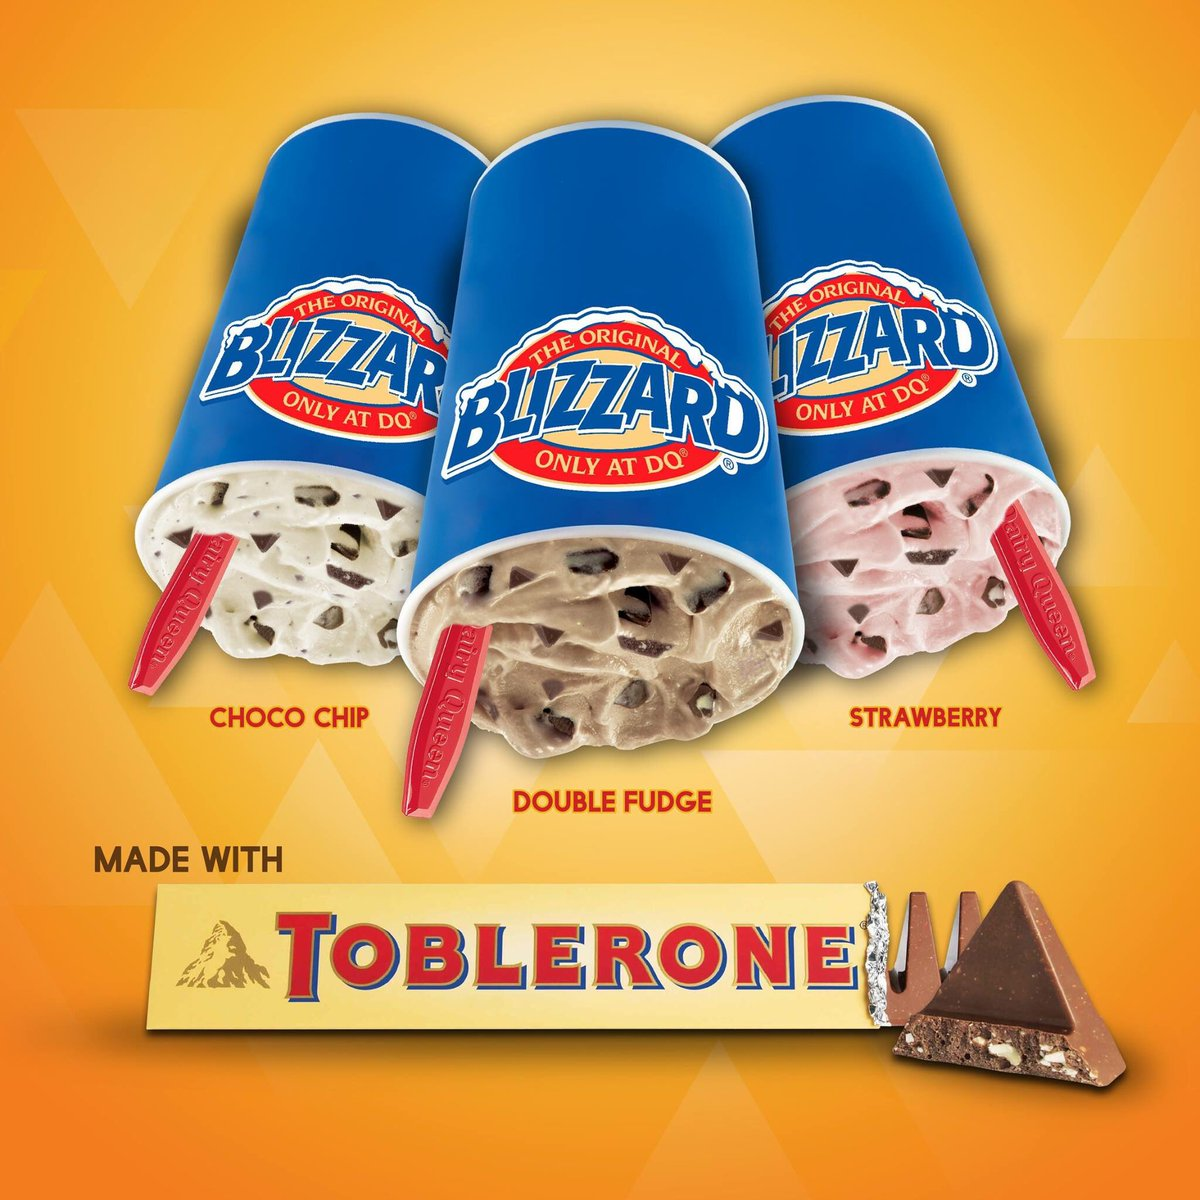 Take your palate to an exciting treat with the newest Blizzard of the Month- #TobleroneBlizzard. Available in all DQ Stores! #DairyQueenPH https://t.co/hUOUmLxs4R